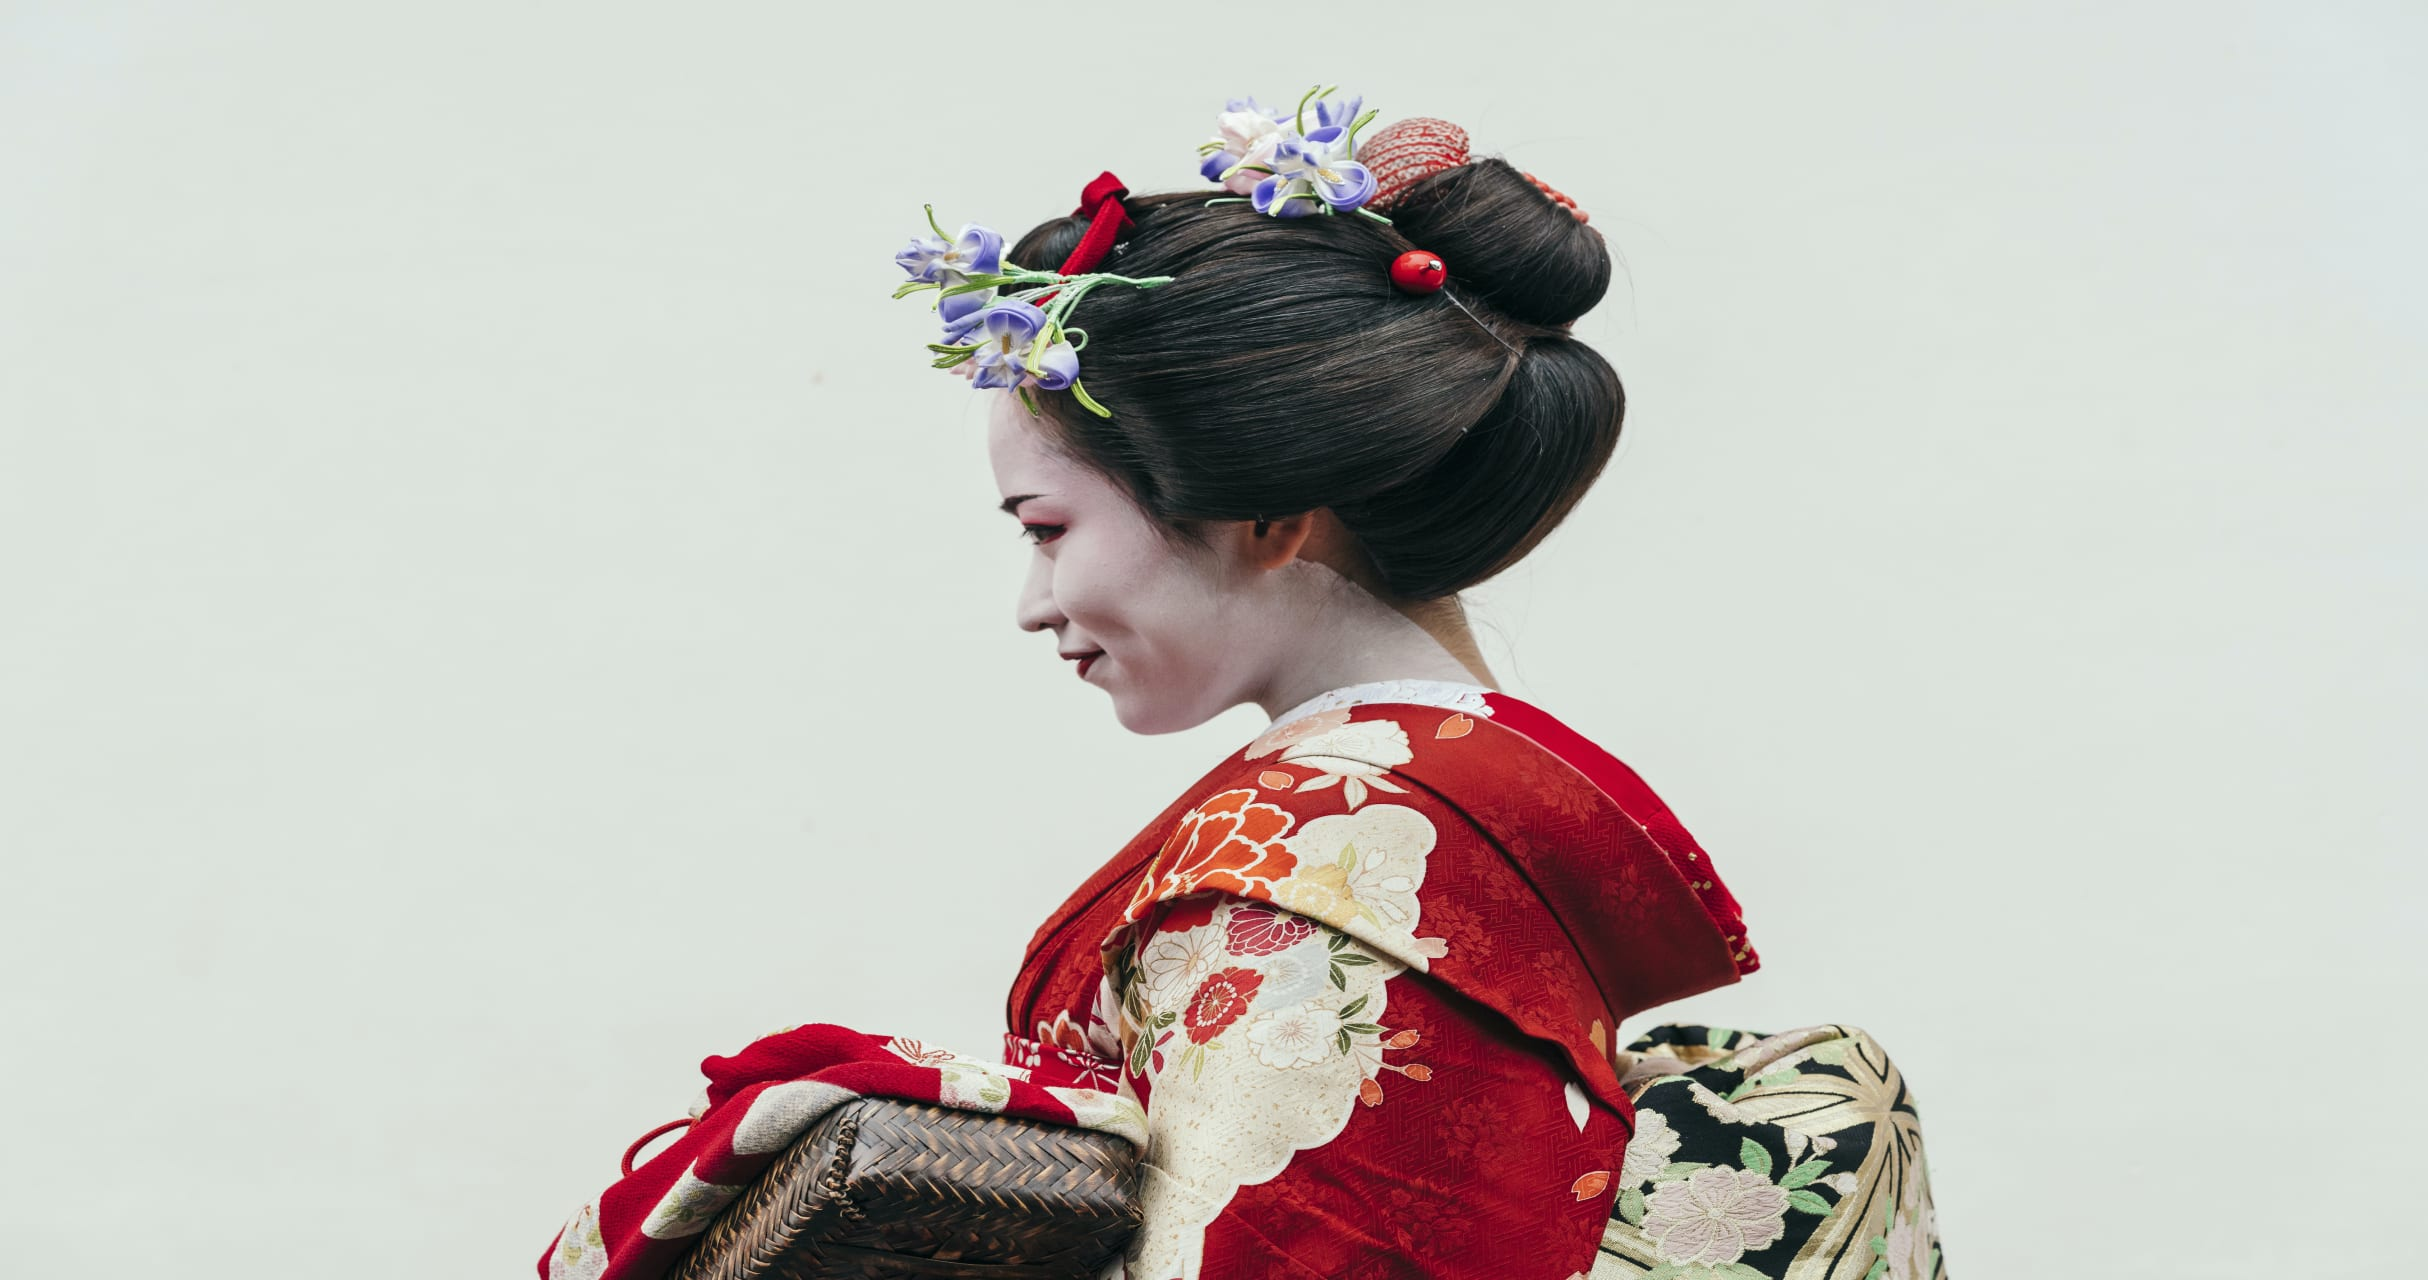 Kyoto - Geisha Show: Let's See Maiko and Their Amazing Performing Art